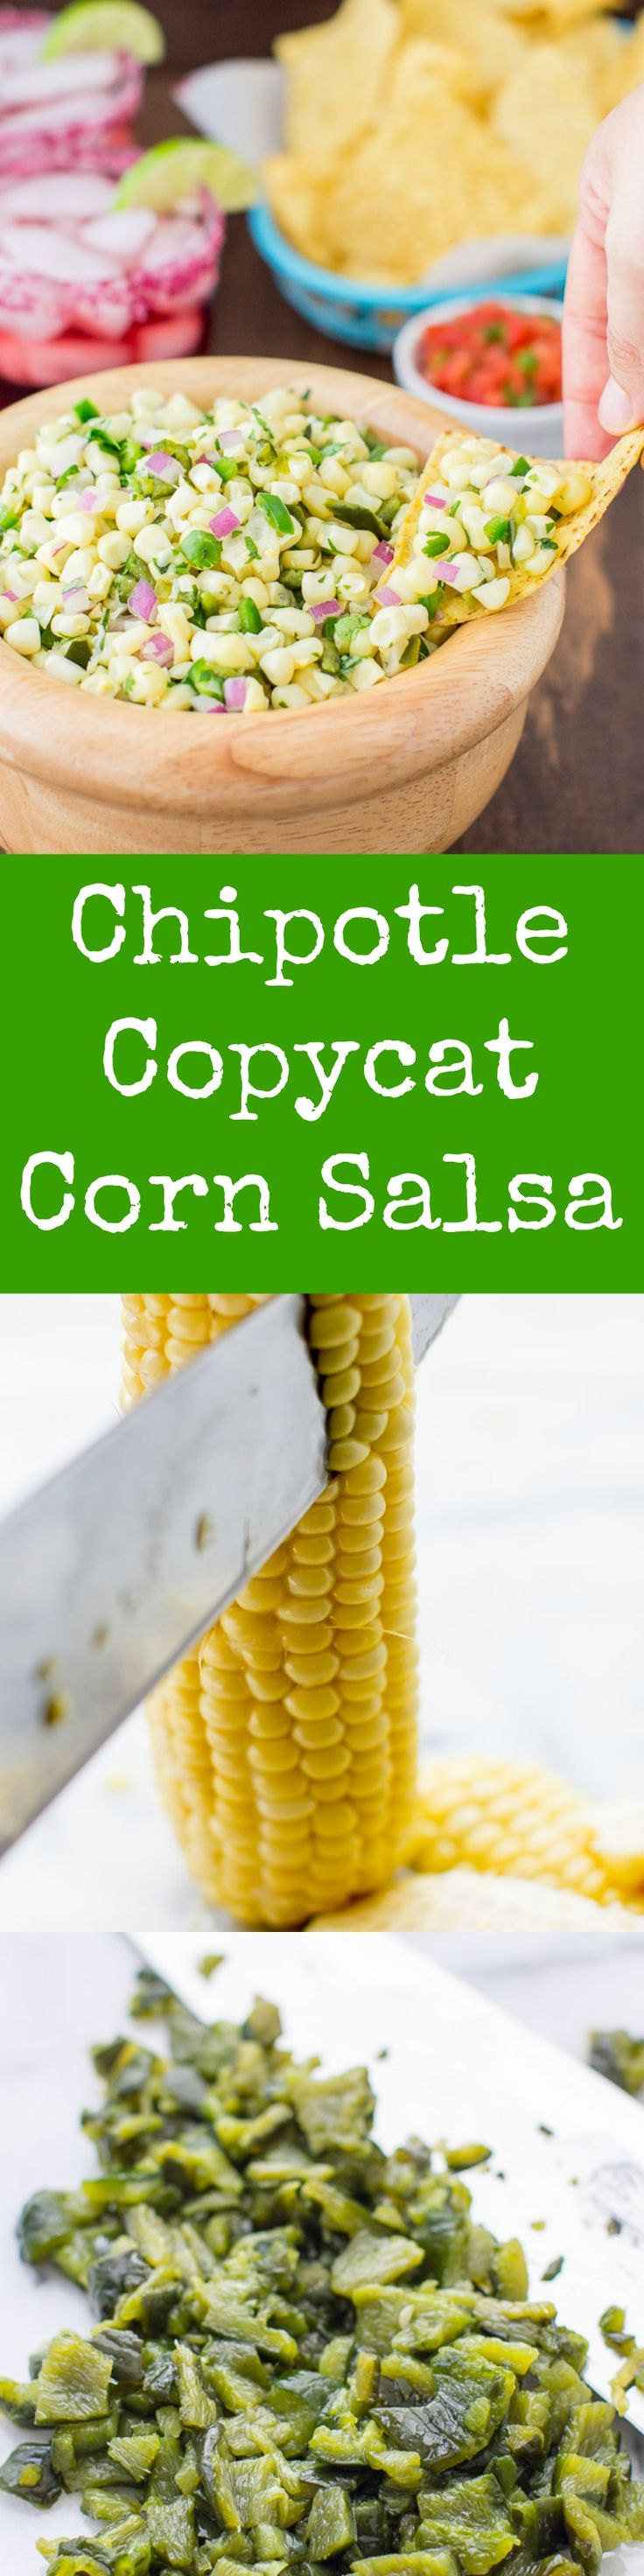 A sweet salsa with medium heat this Roasted Chili-Corn Salsa combines two chili peppers with sweet corn for maximum flavor. A Chipotle Copycat recipe.